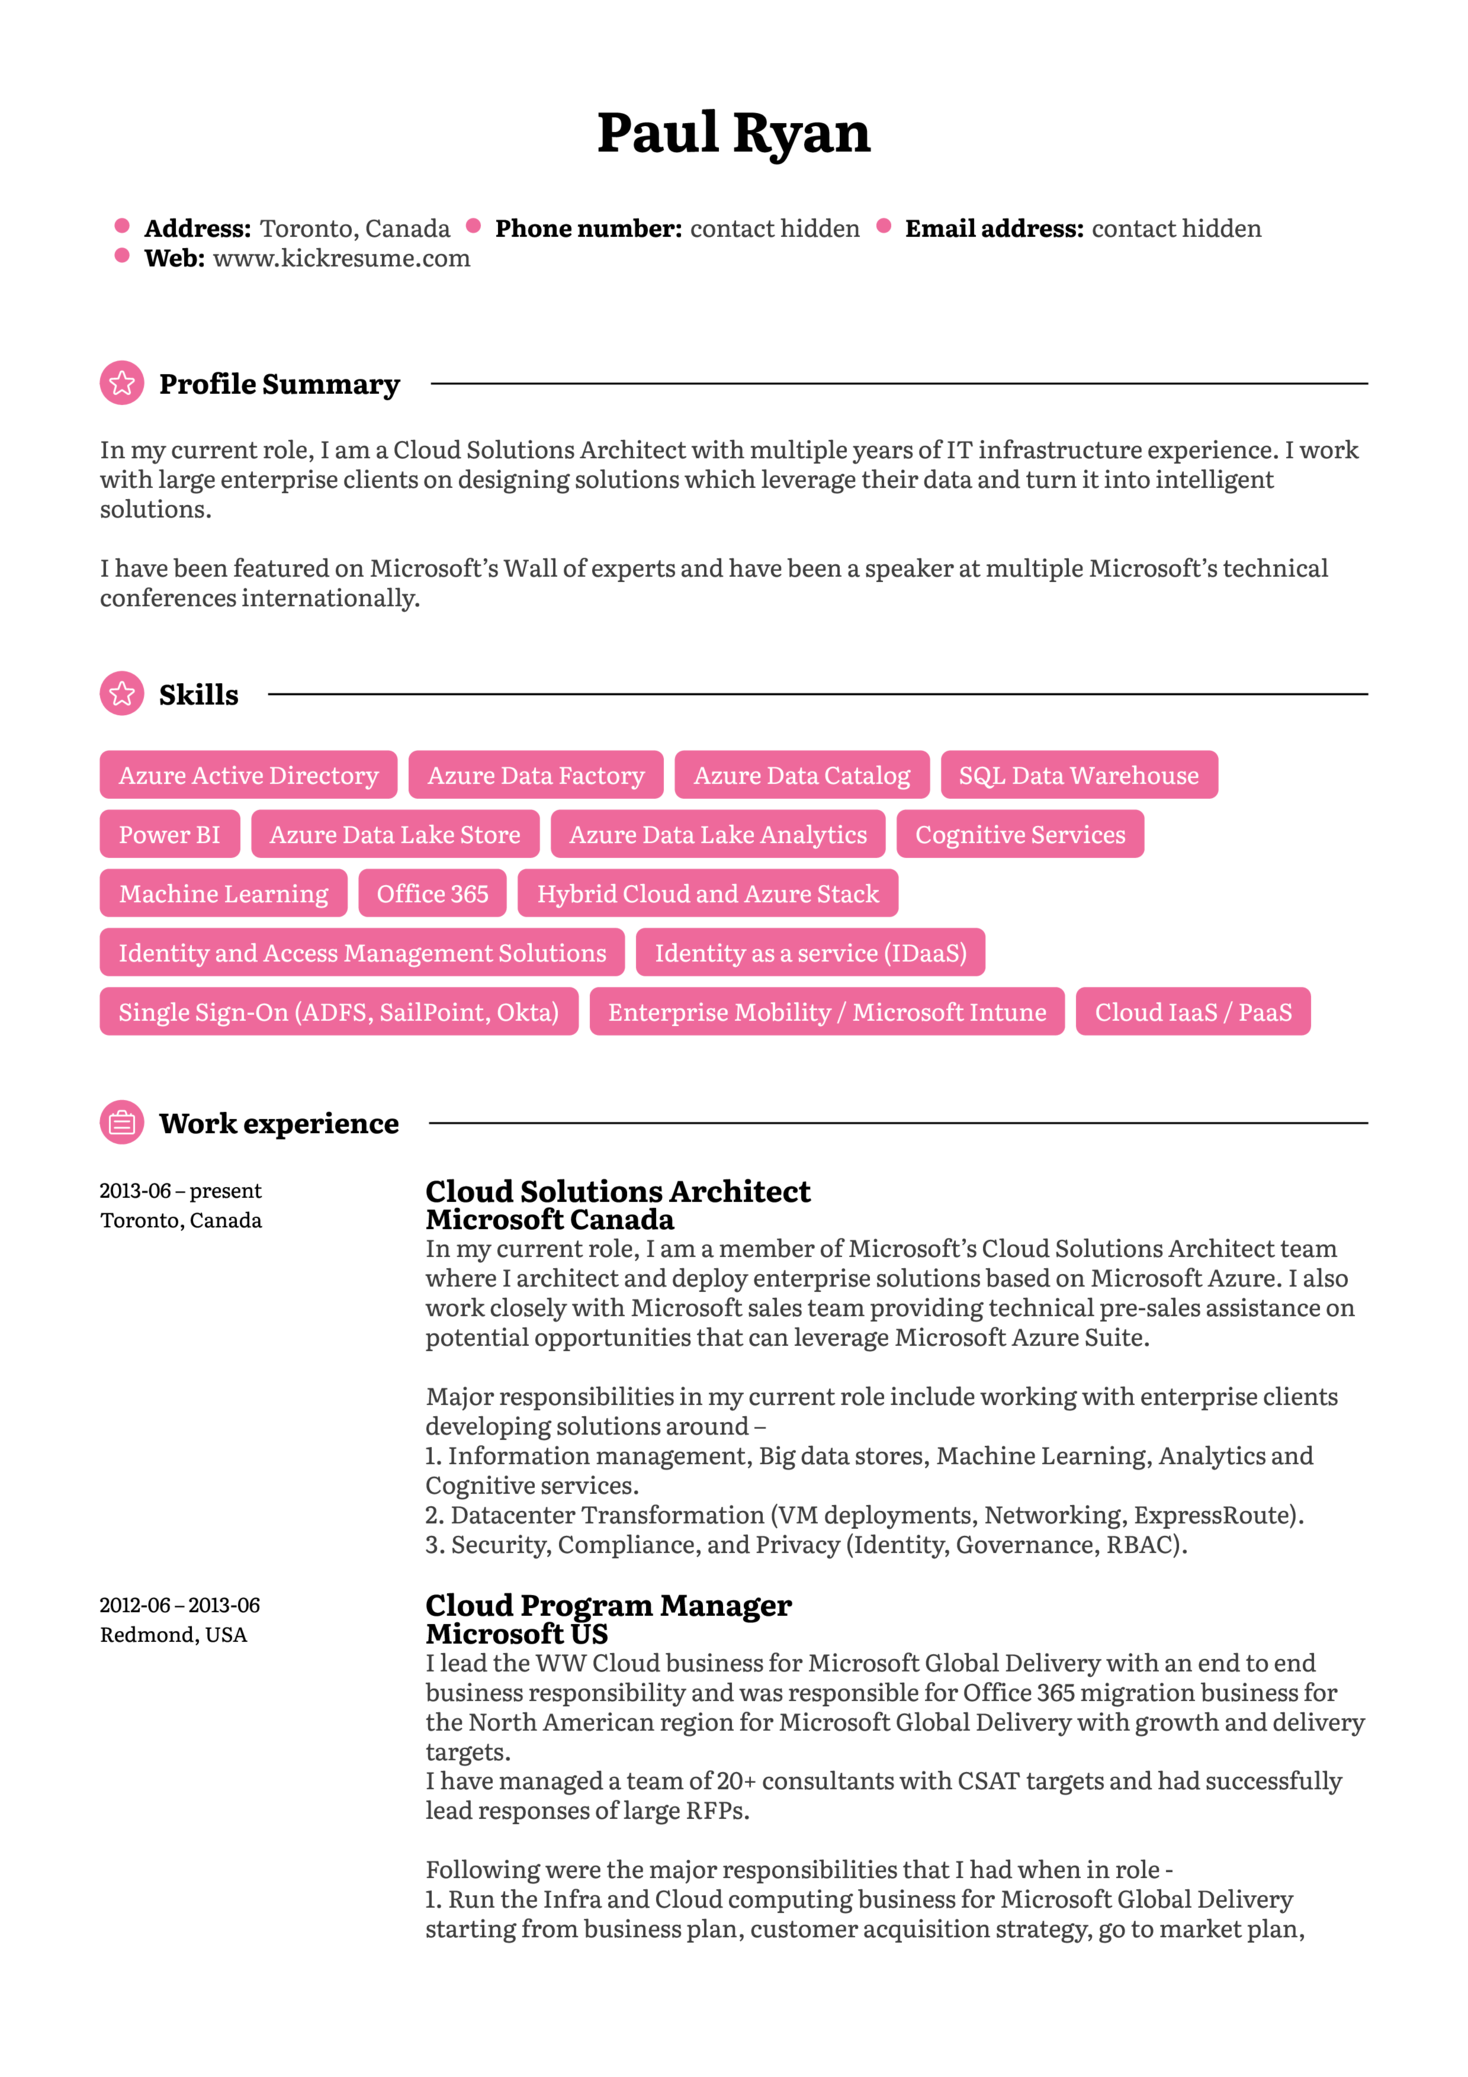 Microsoft Cloud Program Manager Resume Template  Resume Samples